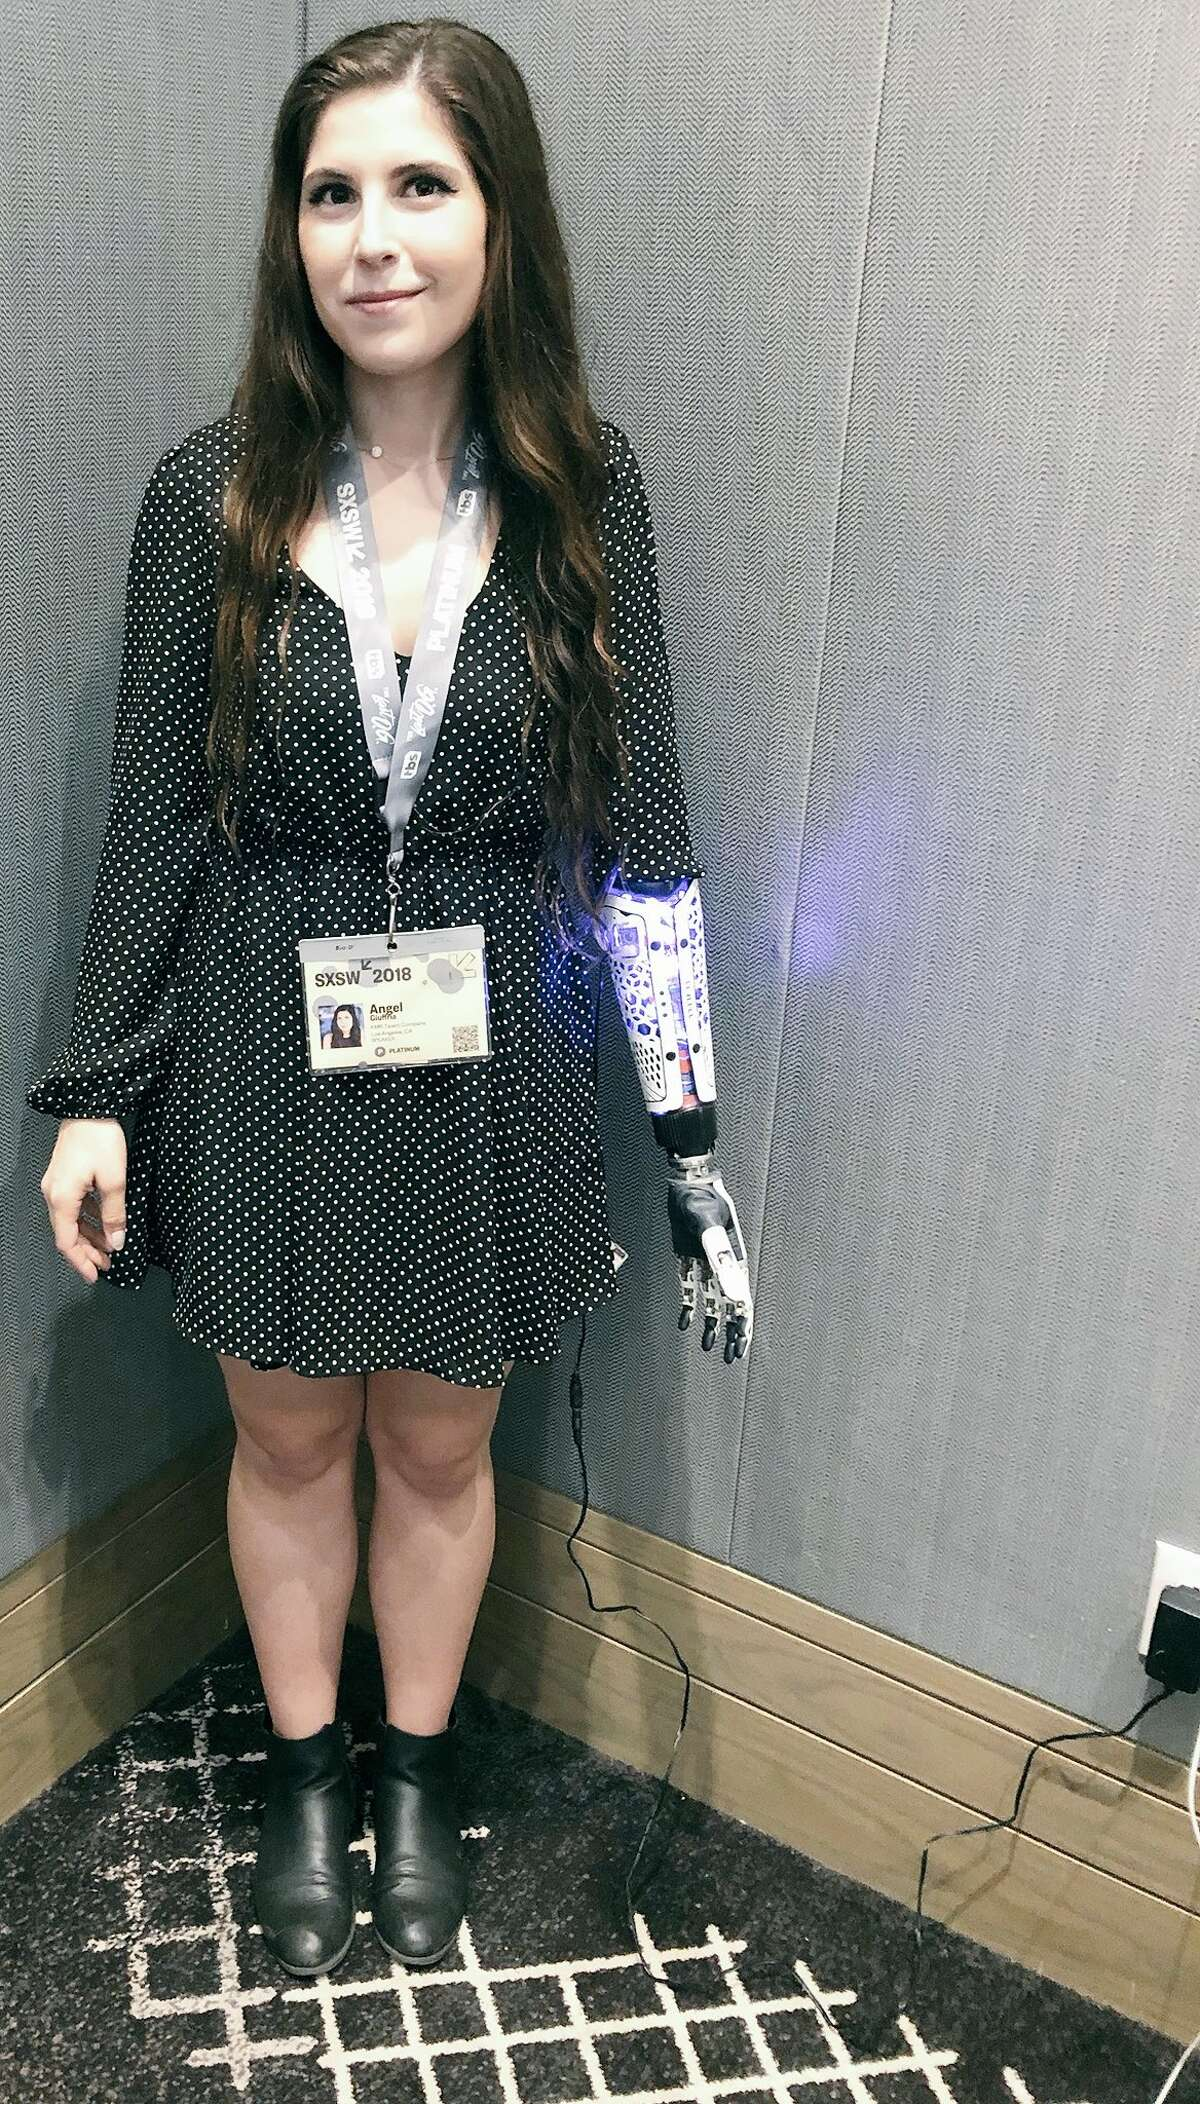 An amputee with a high-tech prosthetic arm recently went viral for tweeting about a funny encounter at Austin's South by Southwest. See notable figures and celebrities who showed up atSXSW 2018.